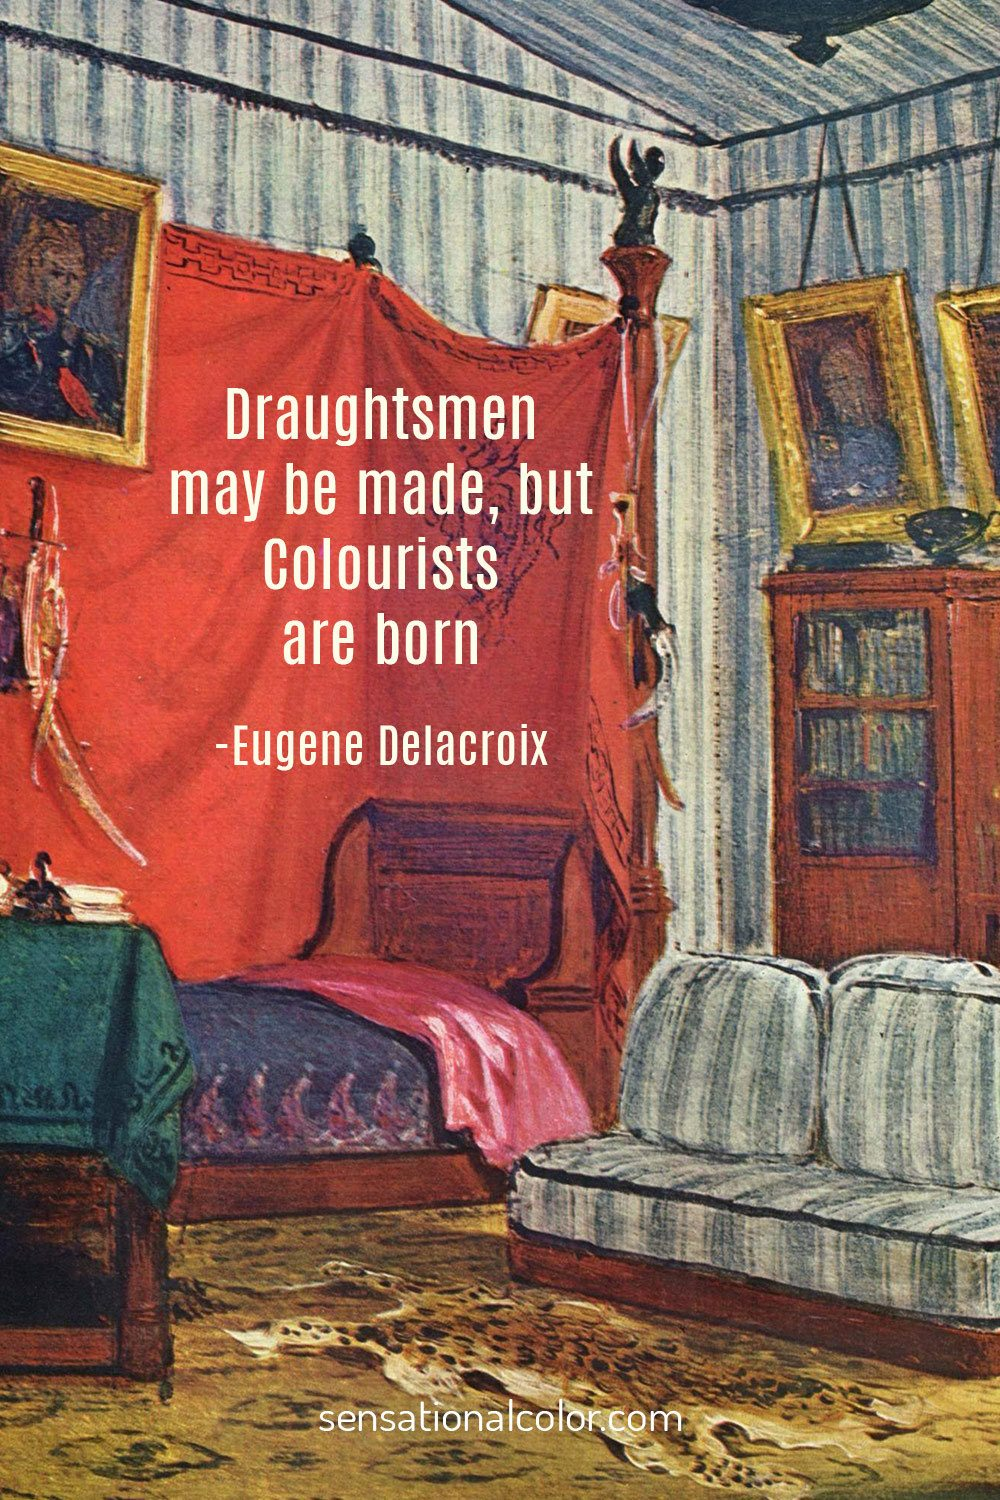 """Draughtsmen may be made, but colourists are born."" - Eugene Delacroix"